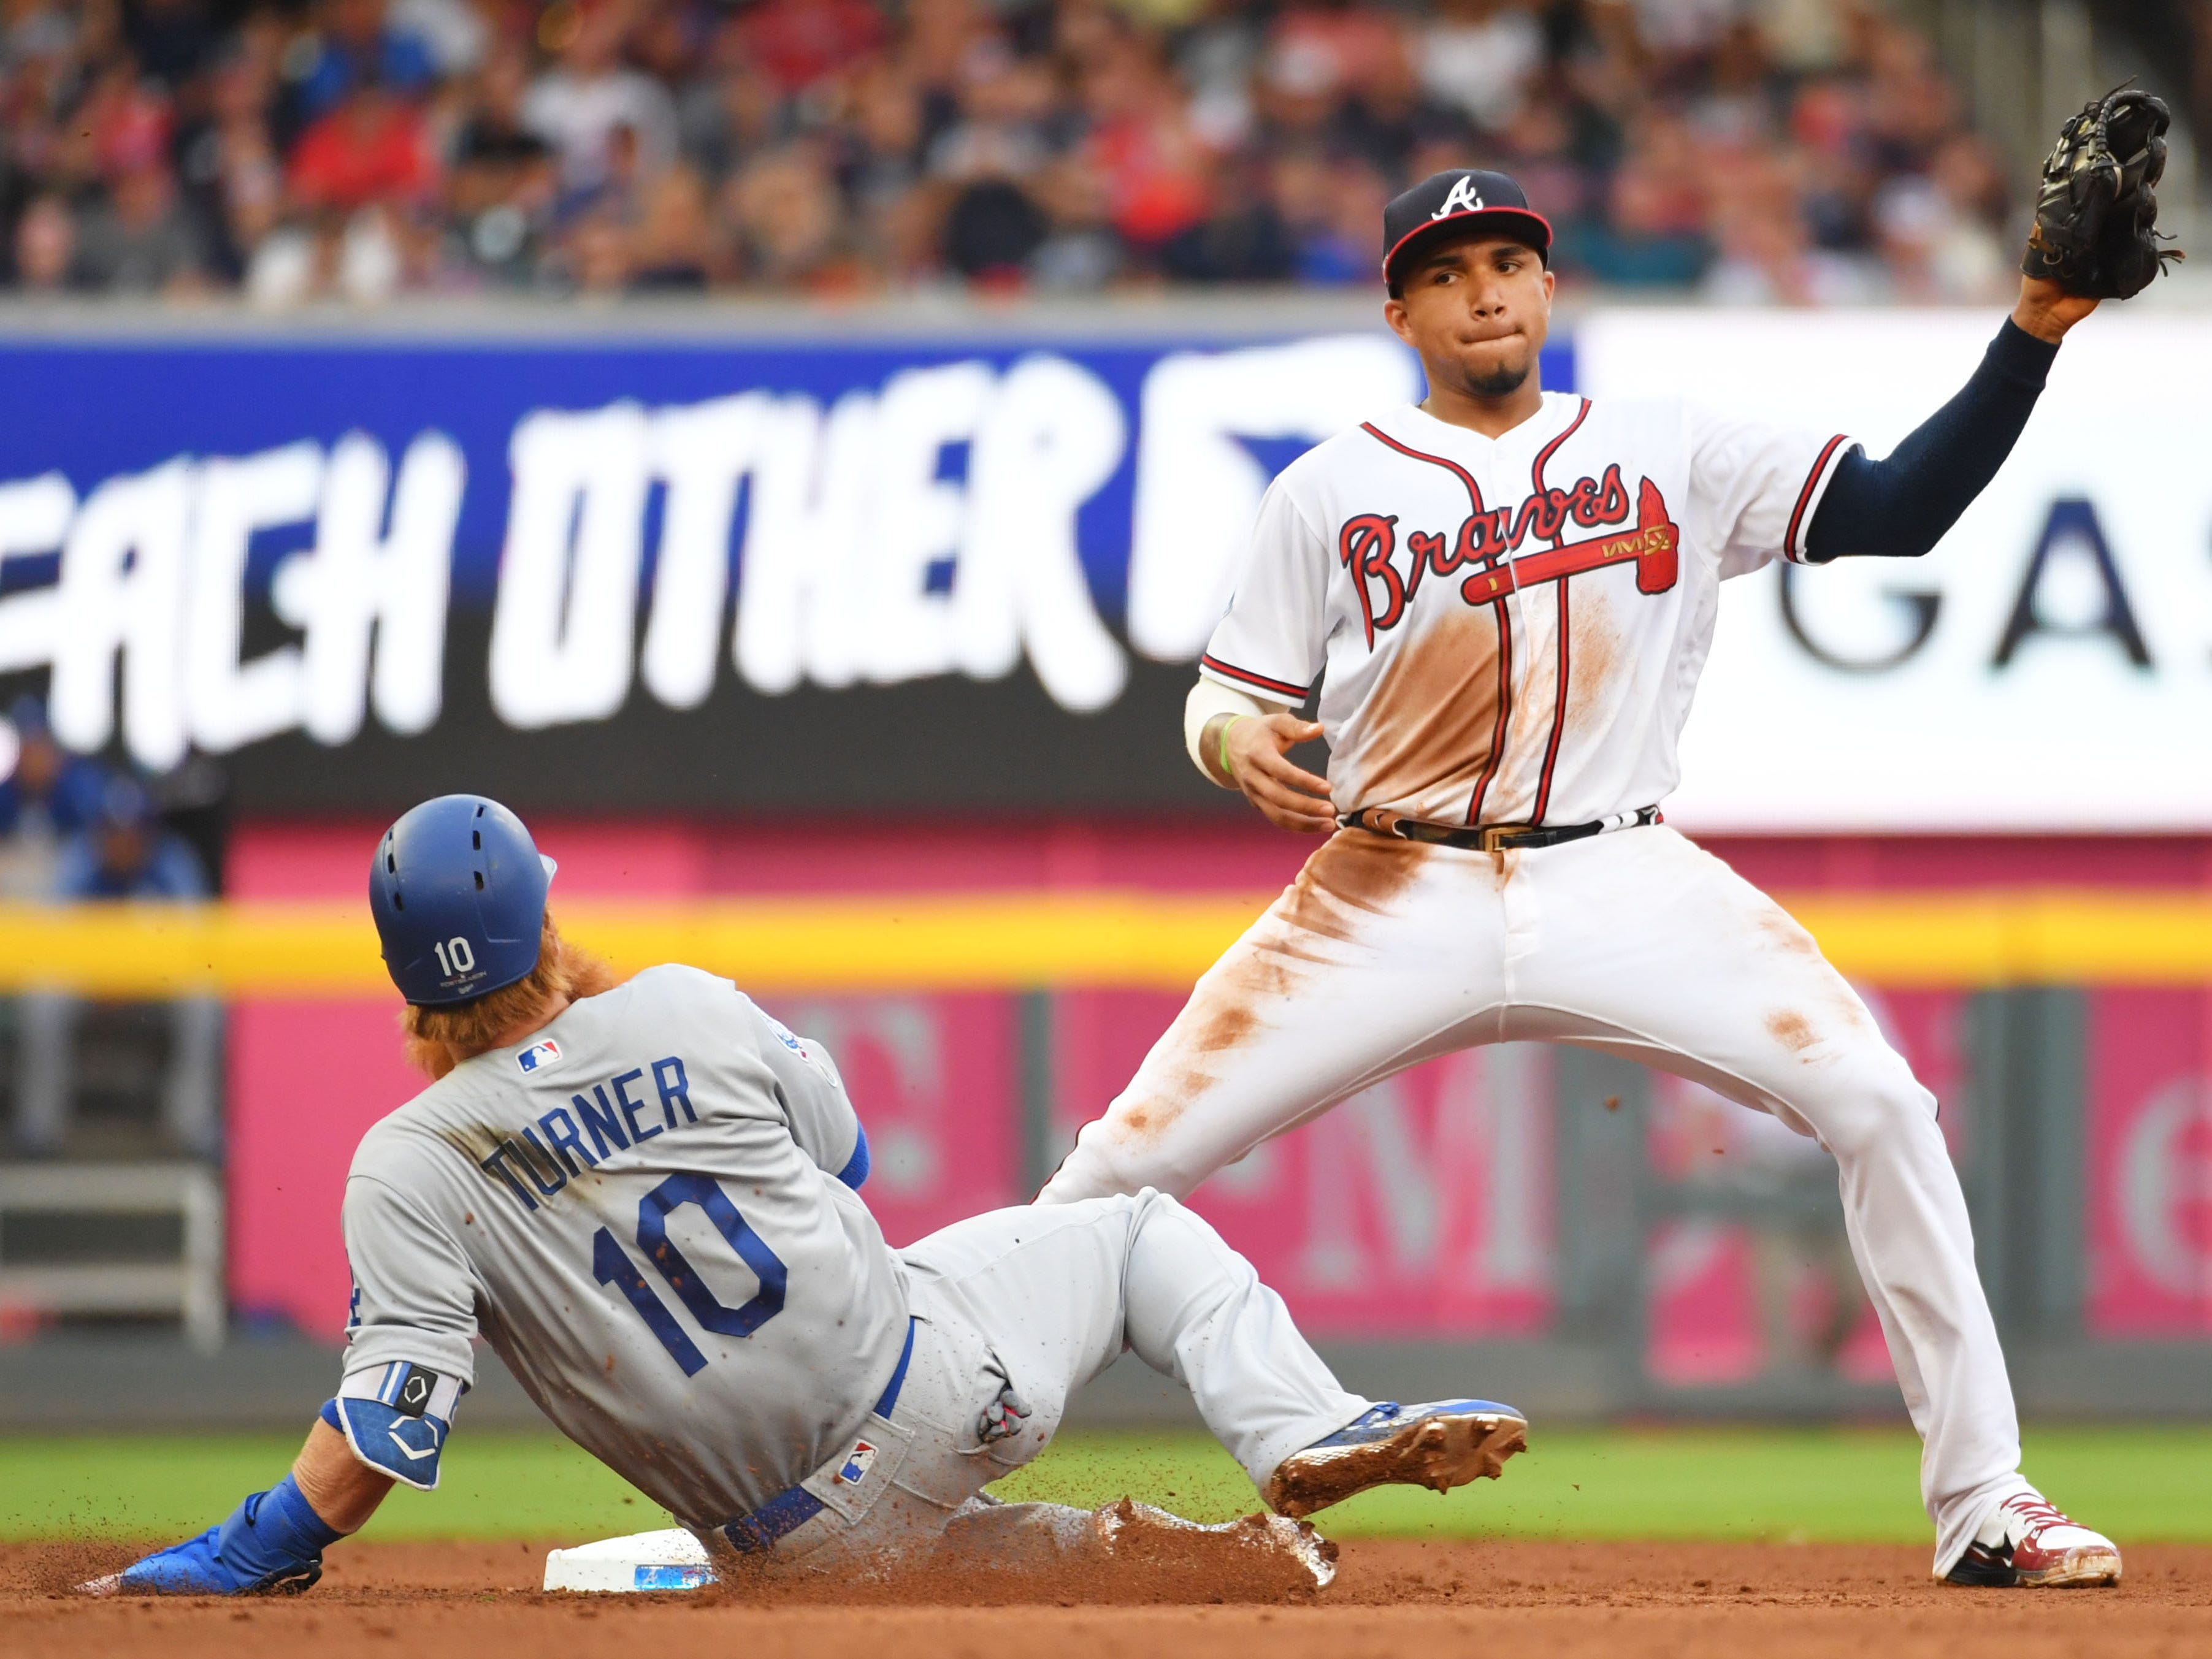 NLDS Game 4: Johan Camargo forces out Justin Turner at second base.